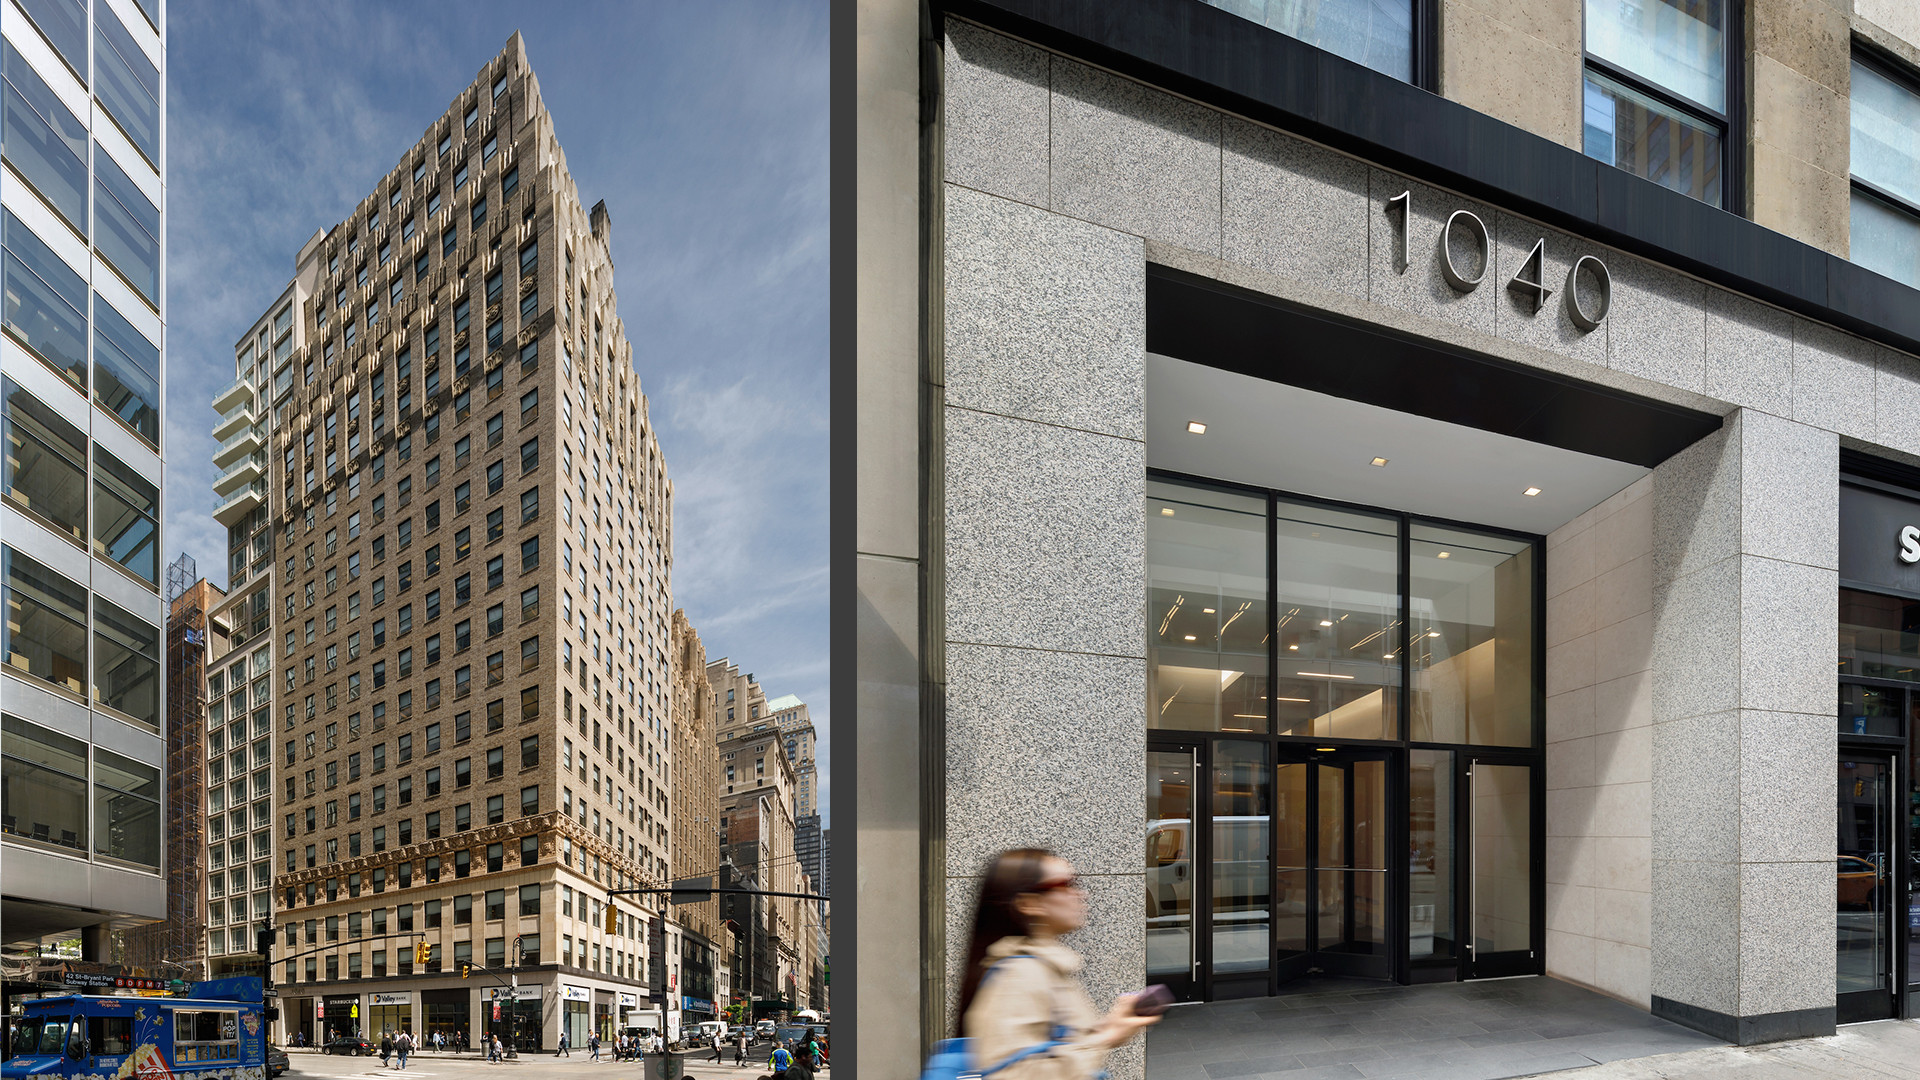 1040 Avenue of the Americas